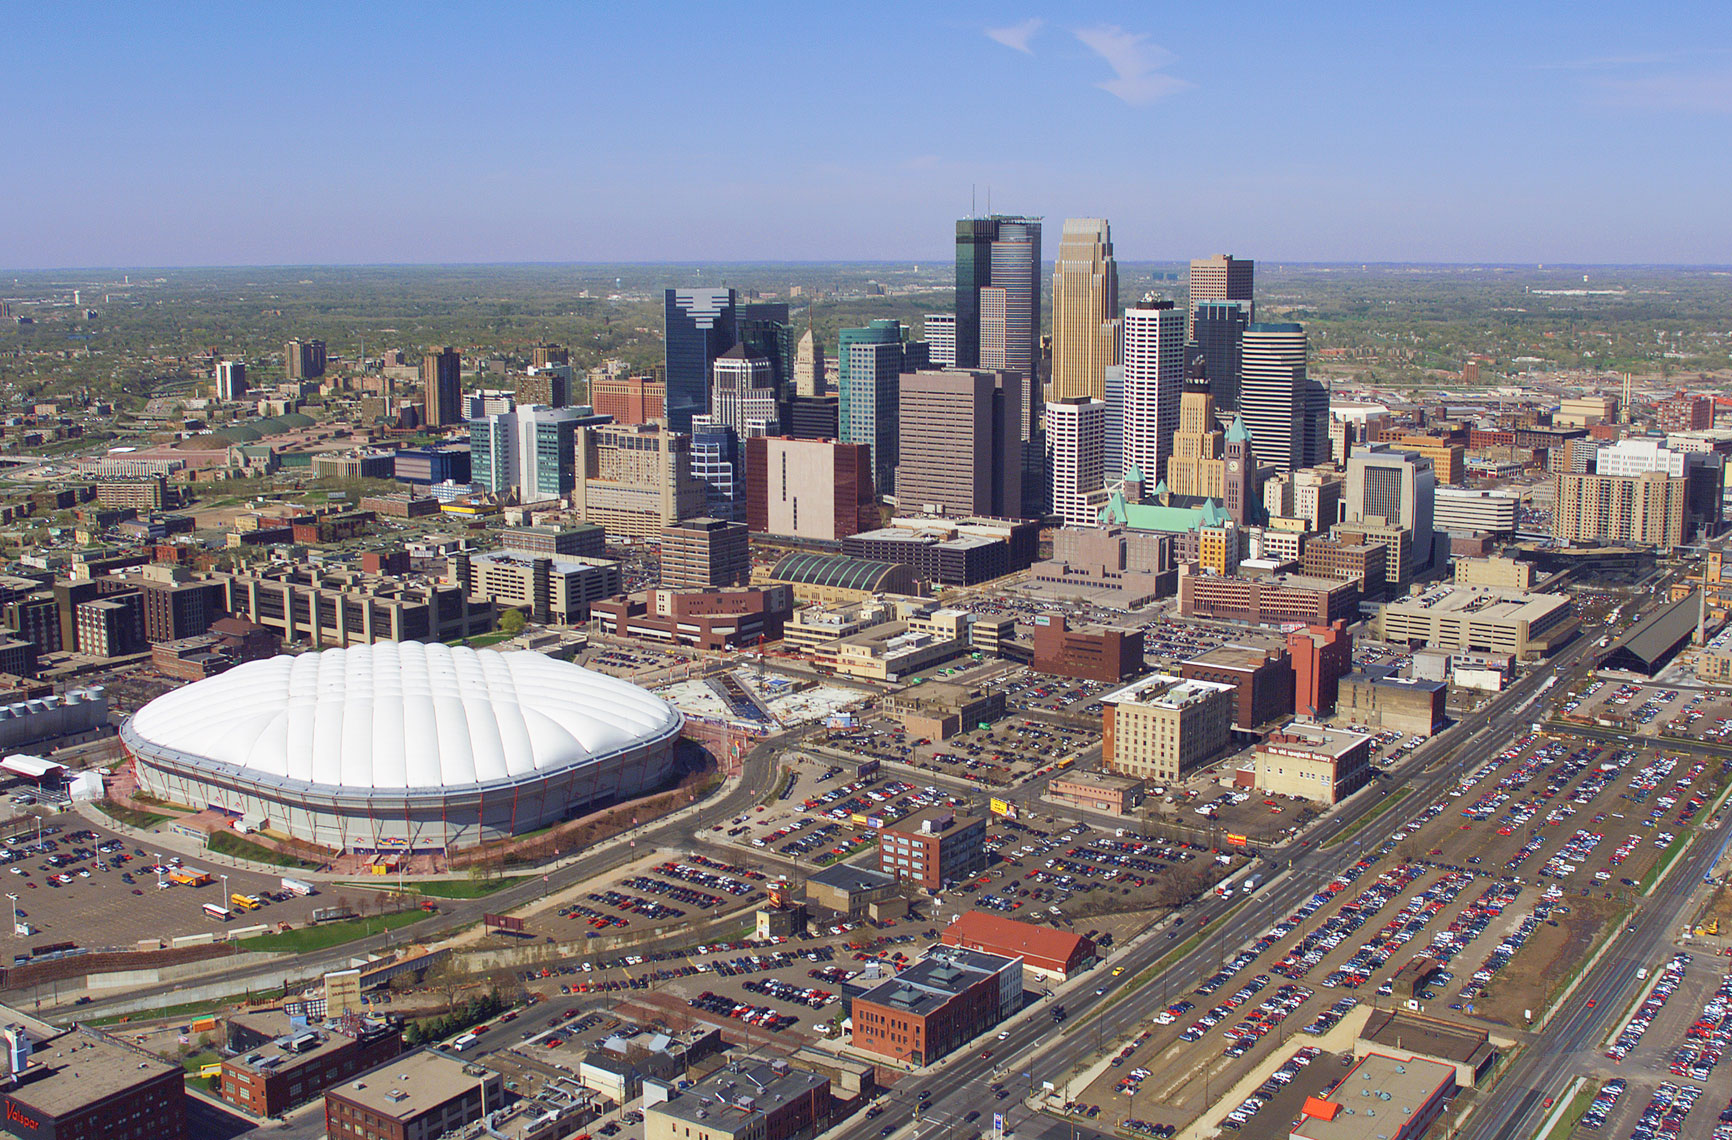 mpls aerial/downtown/arial drone photography